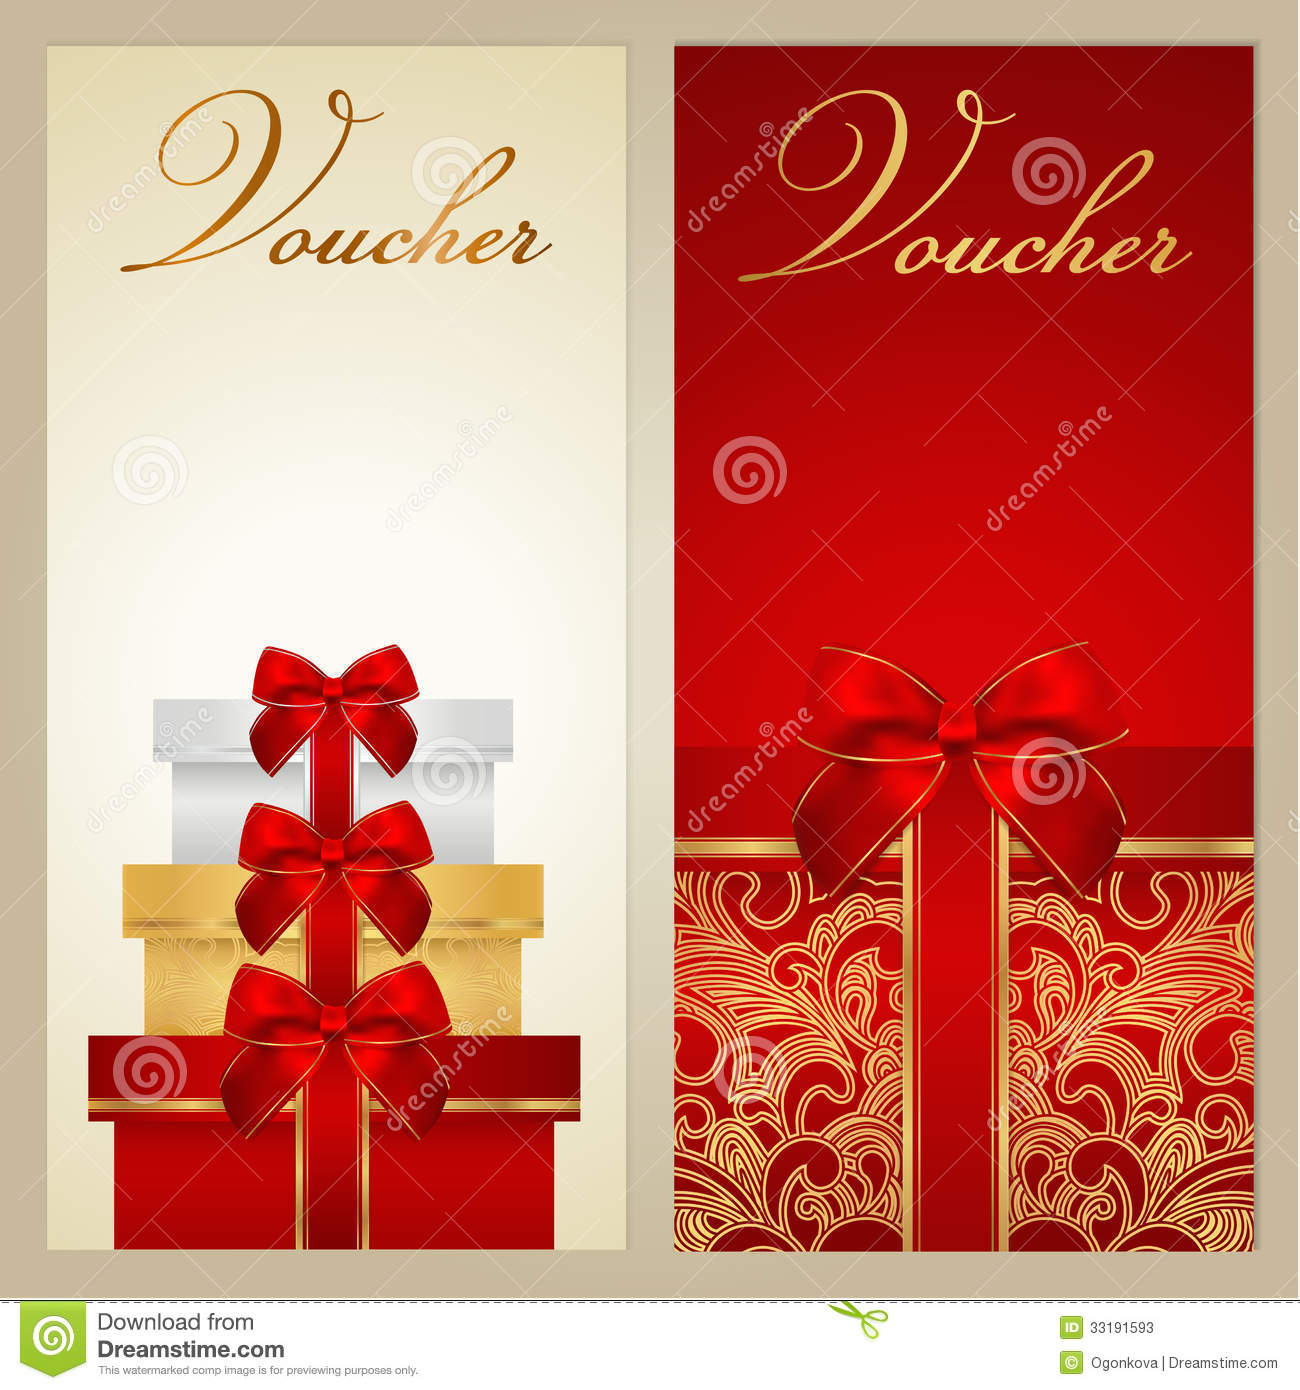 Voucher, Gift Certificate, Coupon. Boxes, Bow  Christmas Gift Vouchers Templates